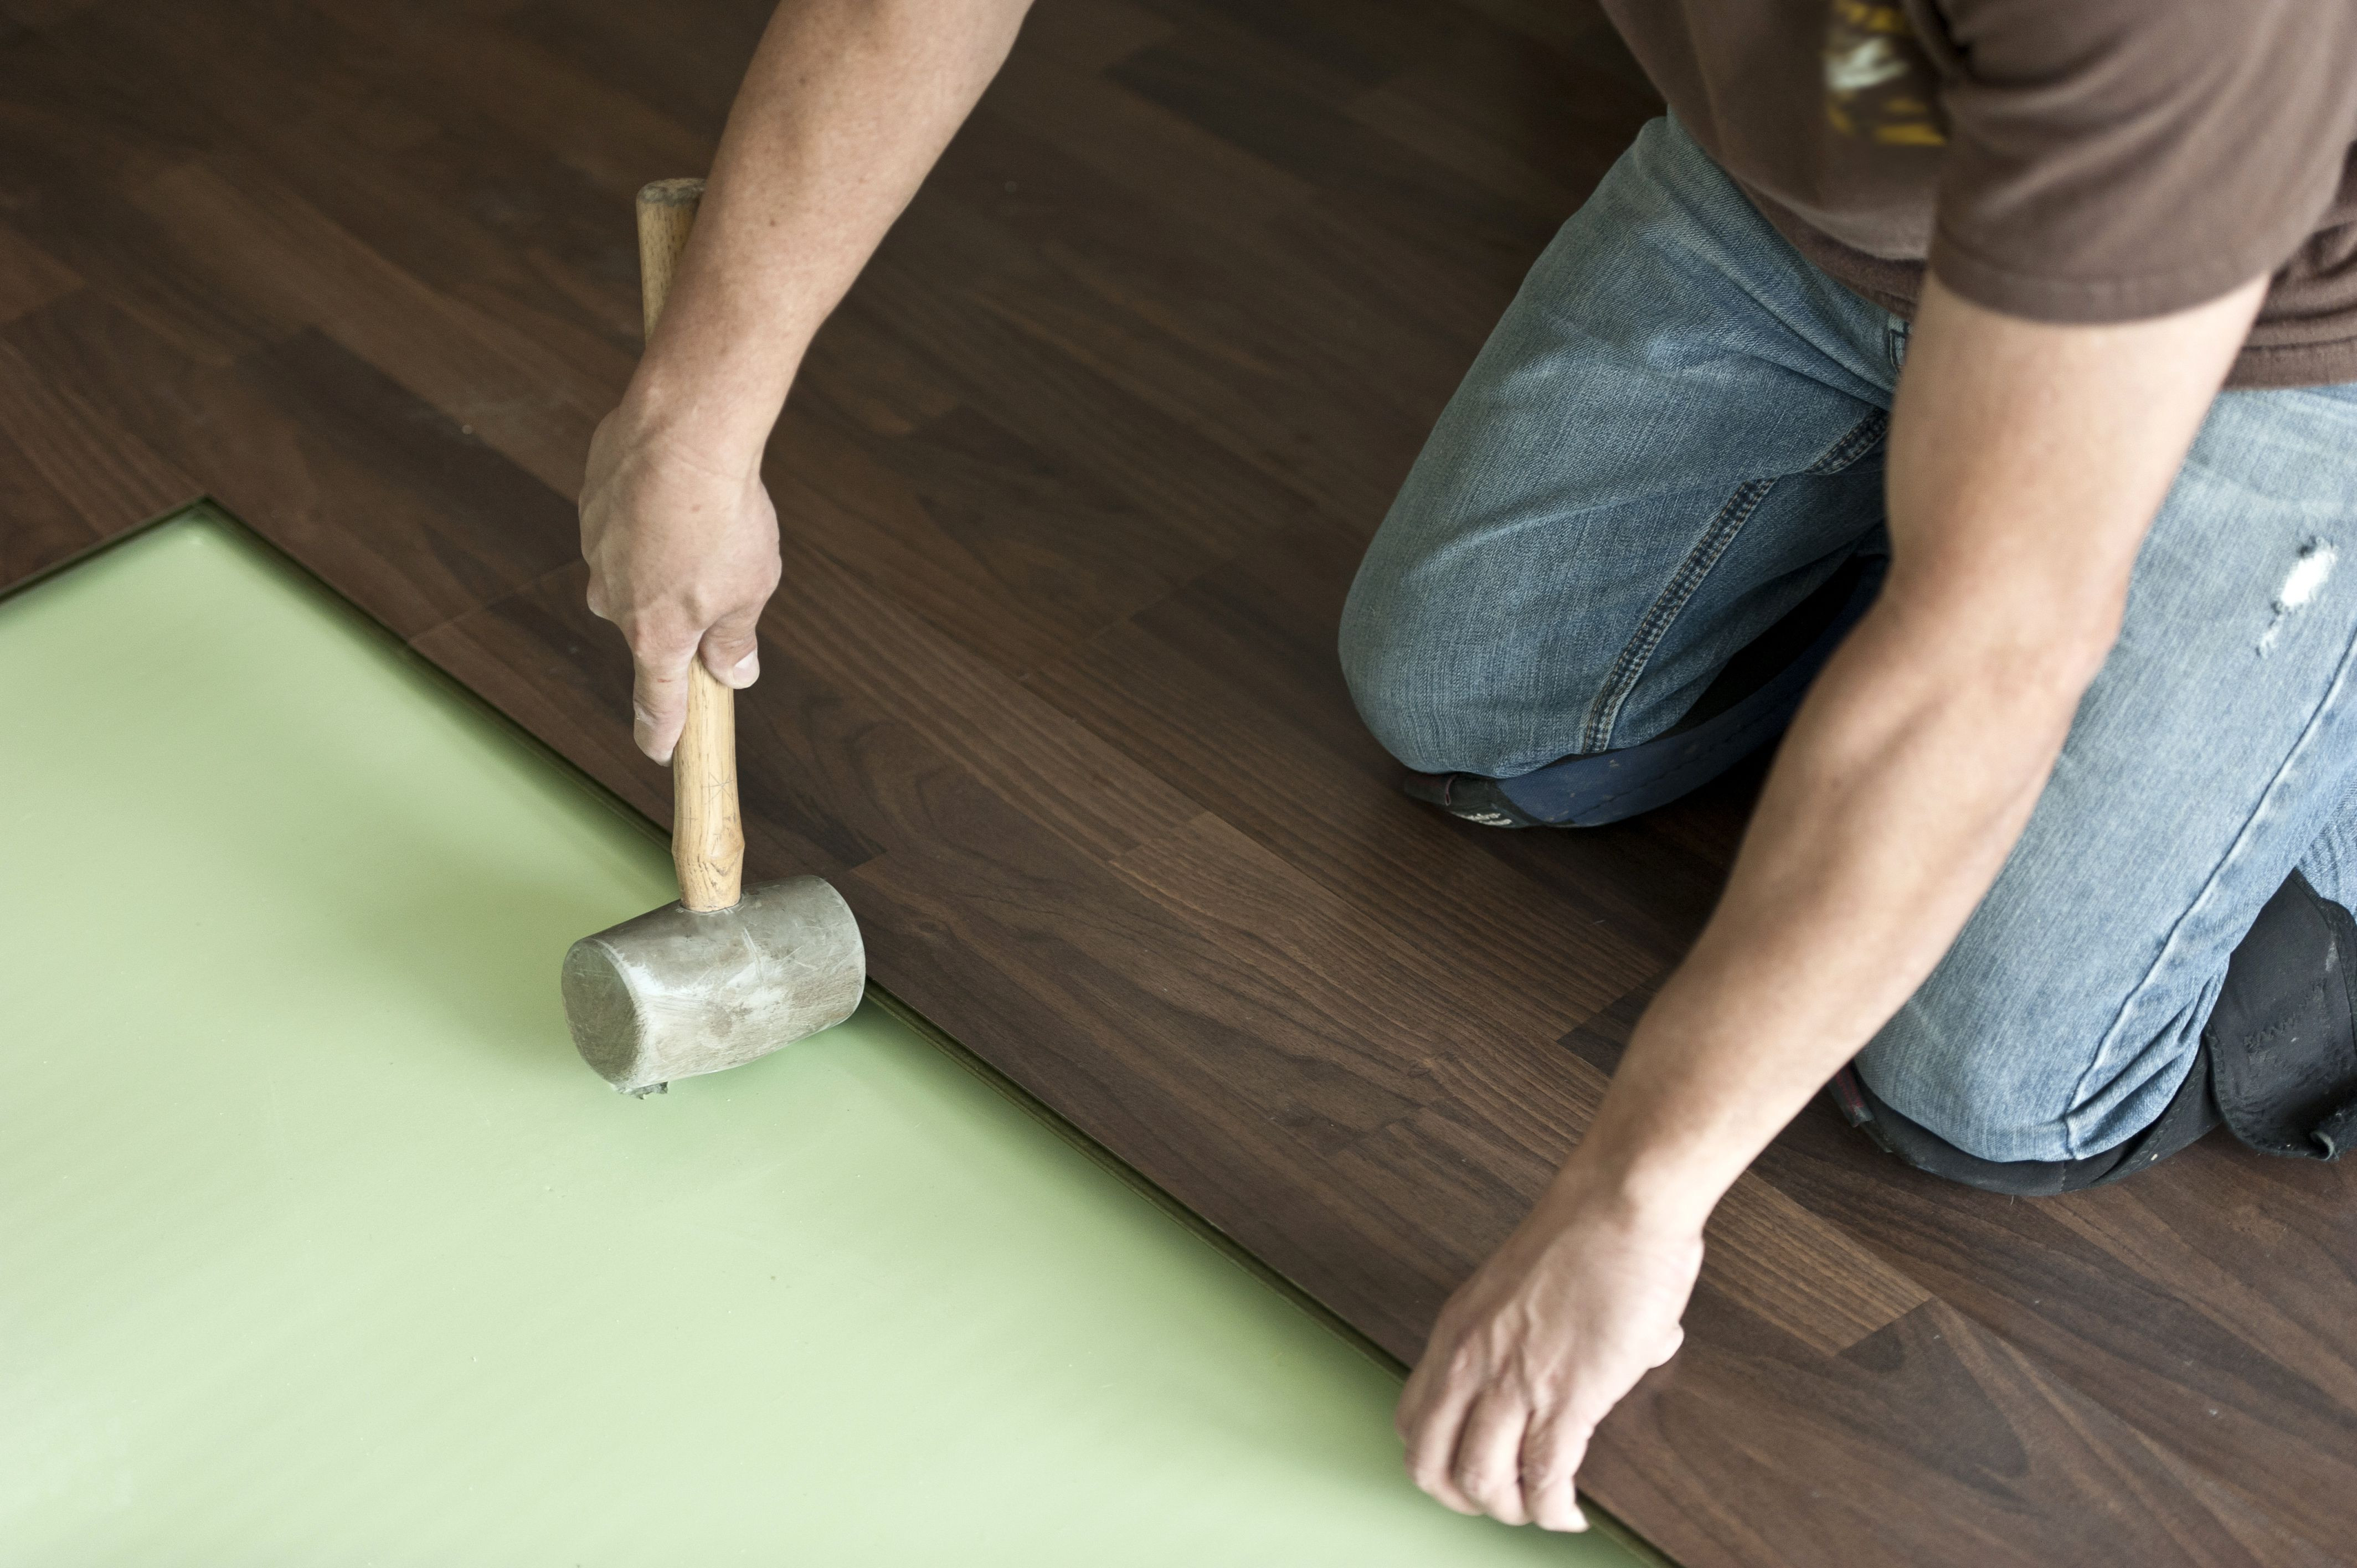 what size nail for 3 4 hardwood floor of can a foam pad be use under solid hardwood flooring inside installing hardwood floor 155149312 57e967d45f9b586c35ade84a